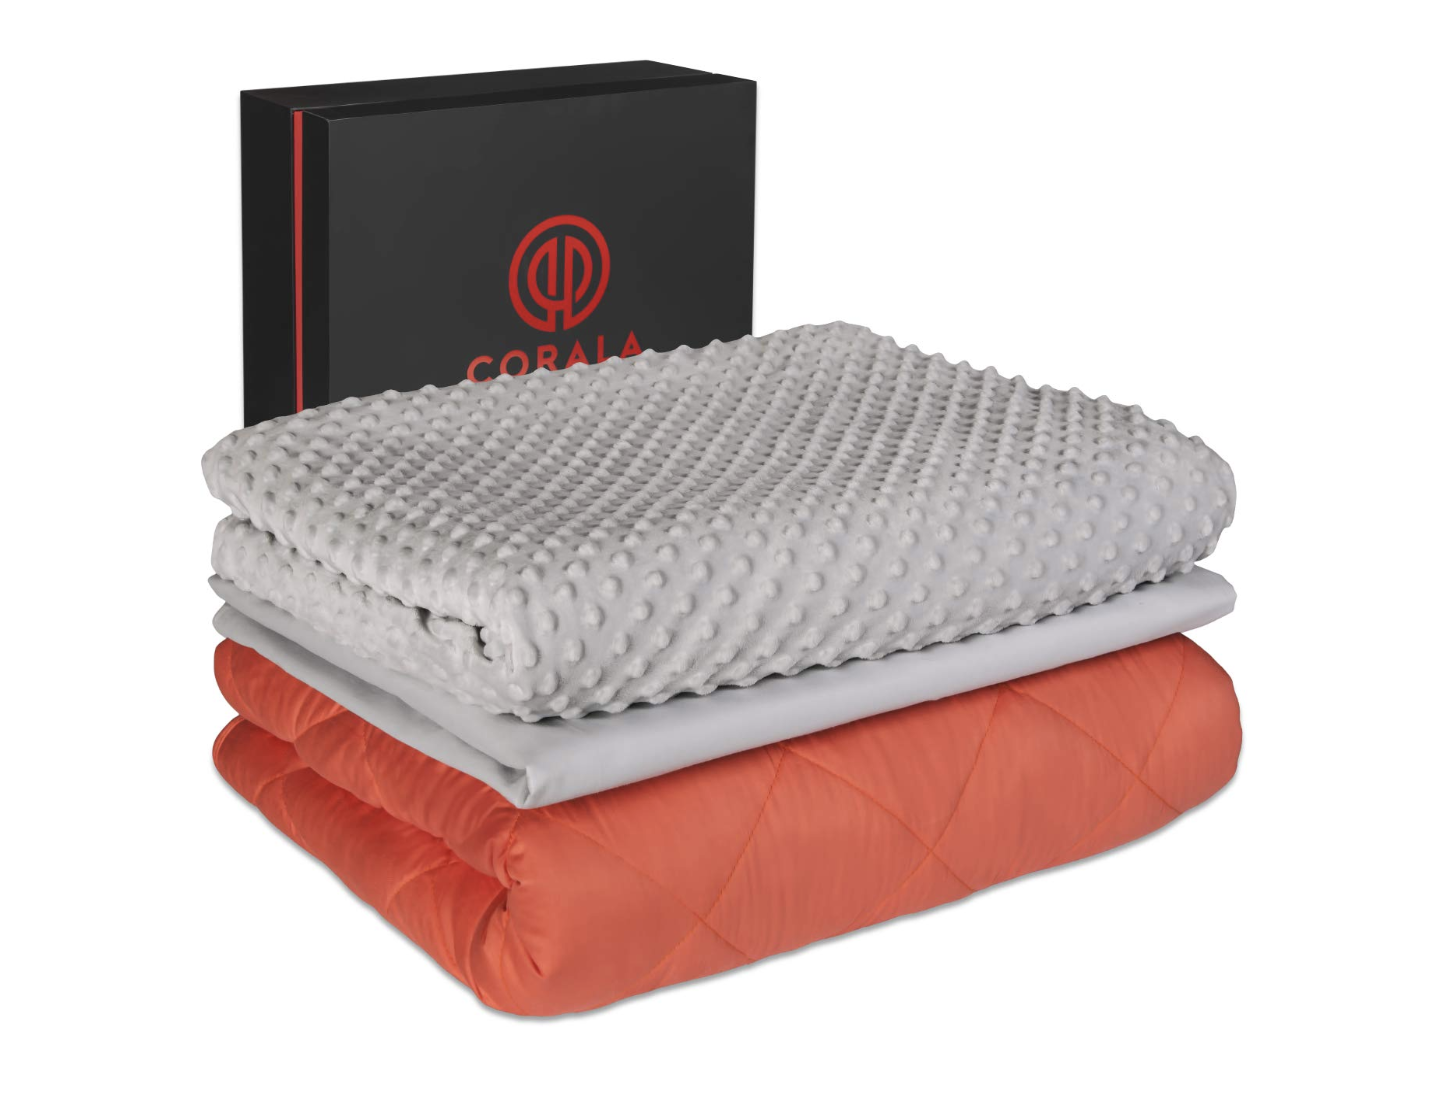 Corala Complete Weighted Blanket Set